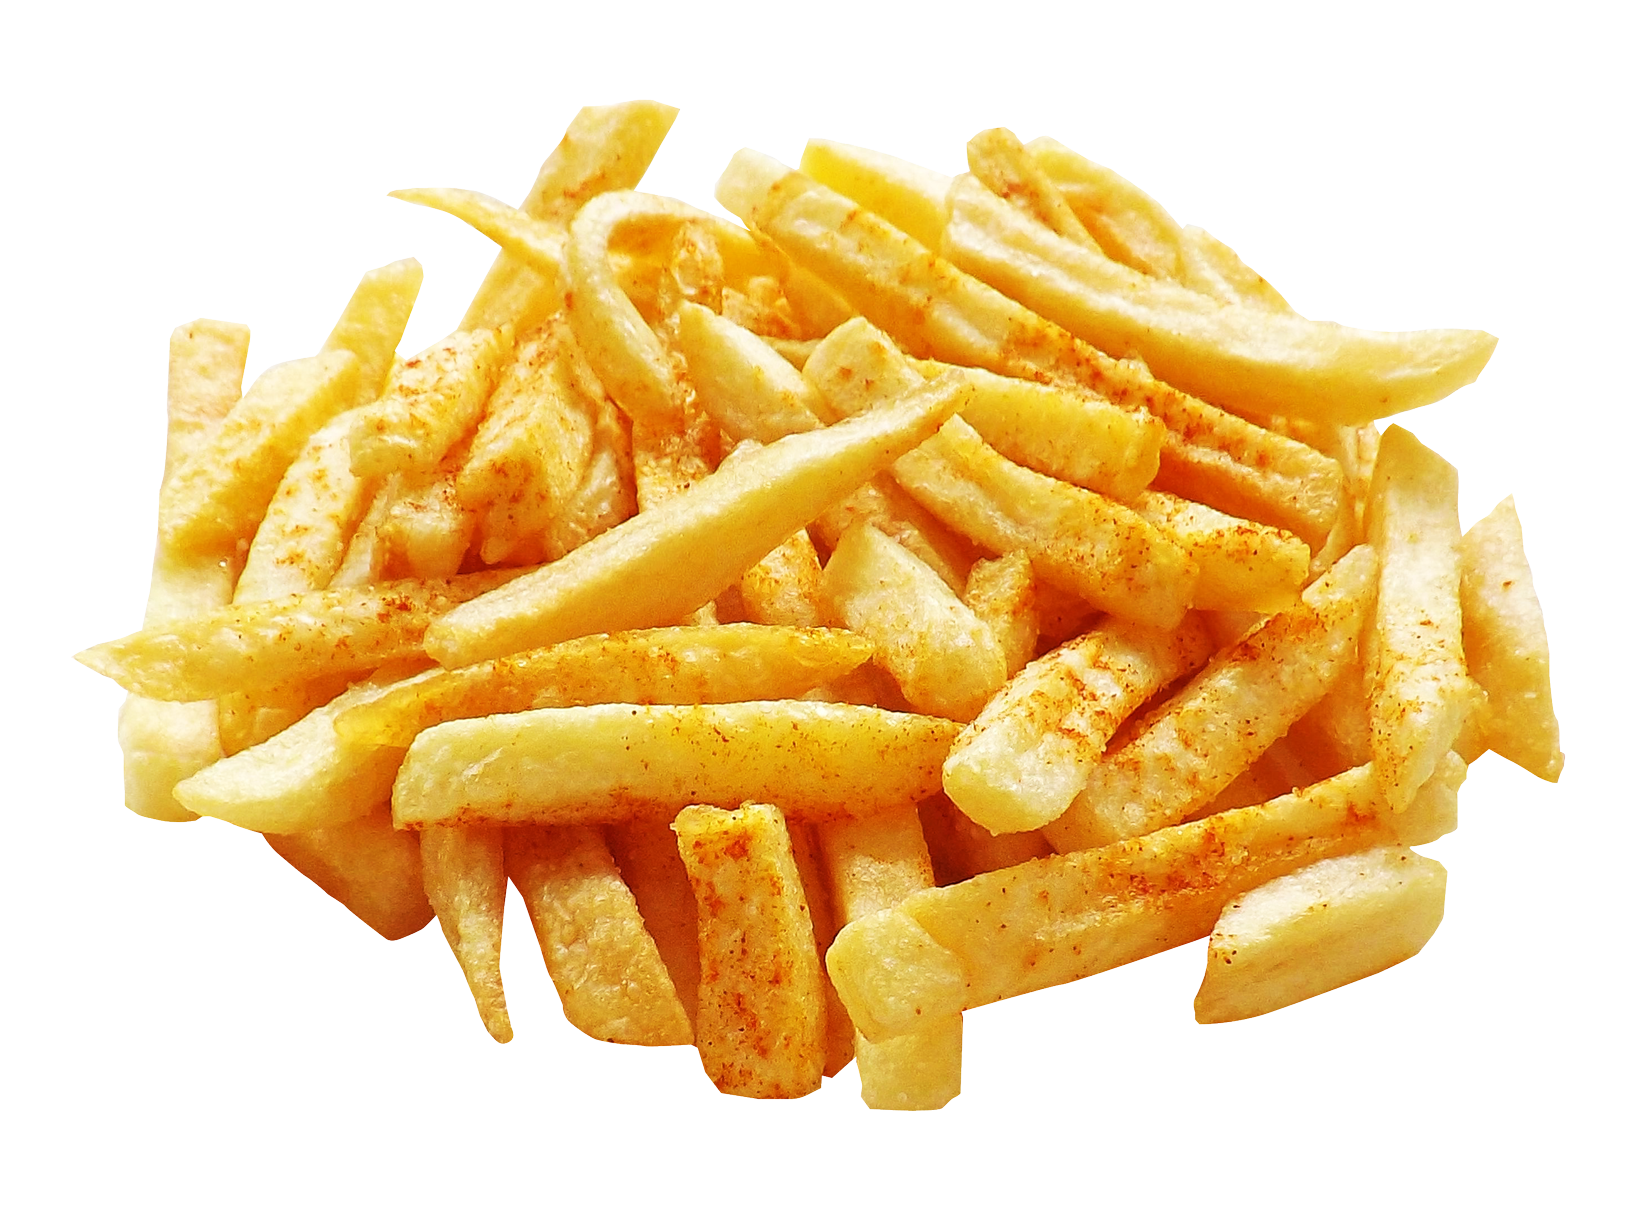 Fries PNG Image.